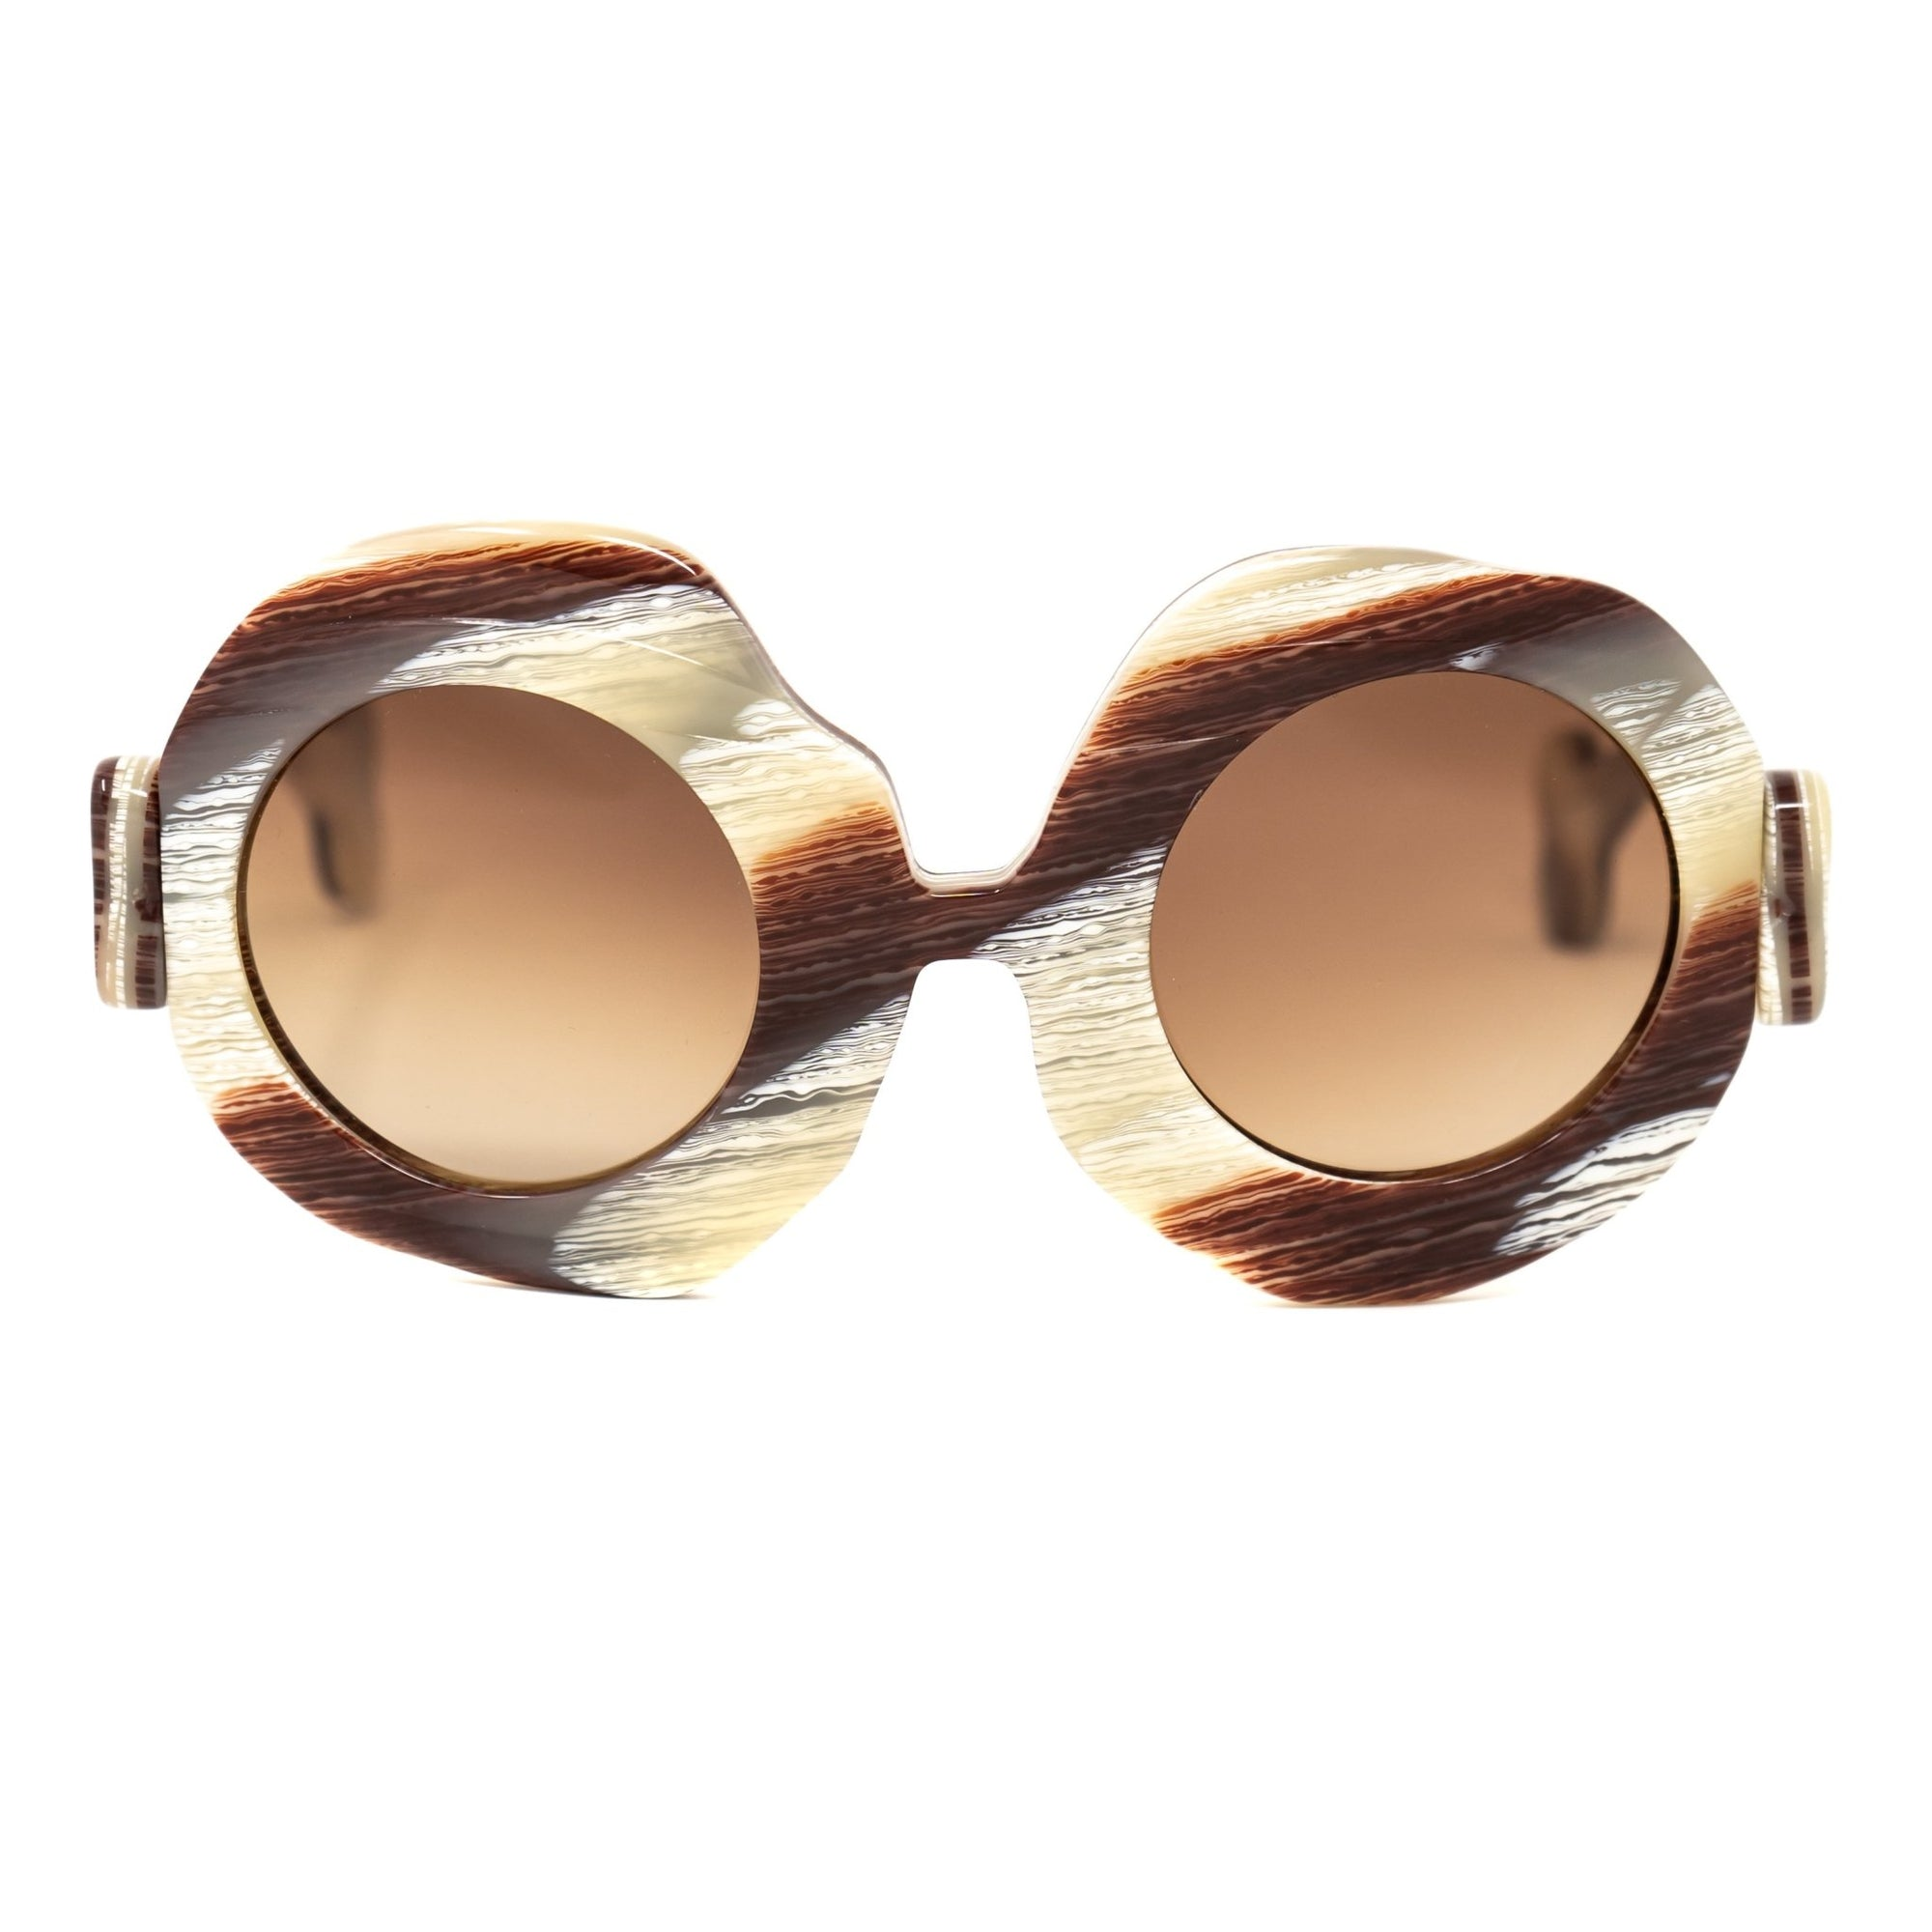 Jeremy Scott Sunglasses Bones Special Edition Brown Cream CAT2 JSBONESSPECSC2SUN - Watches & Crystals